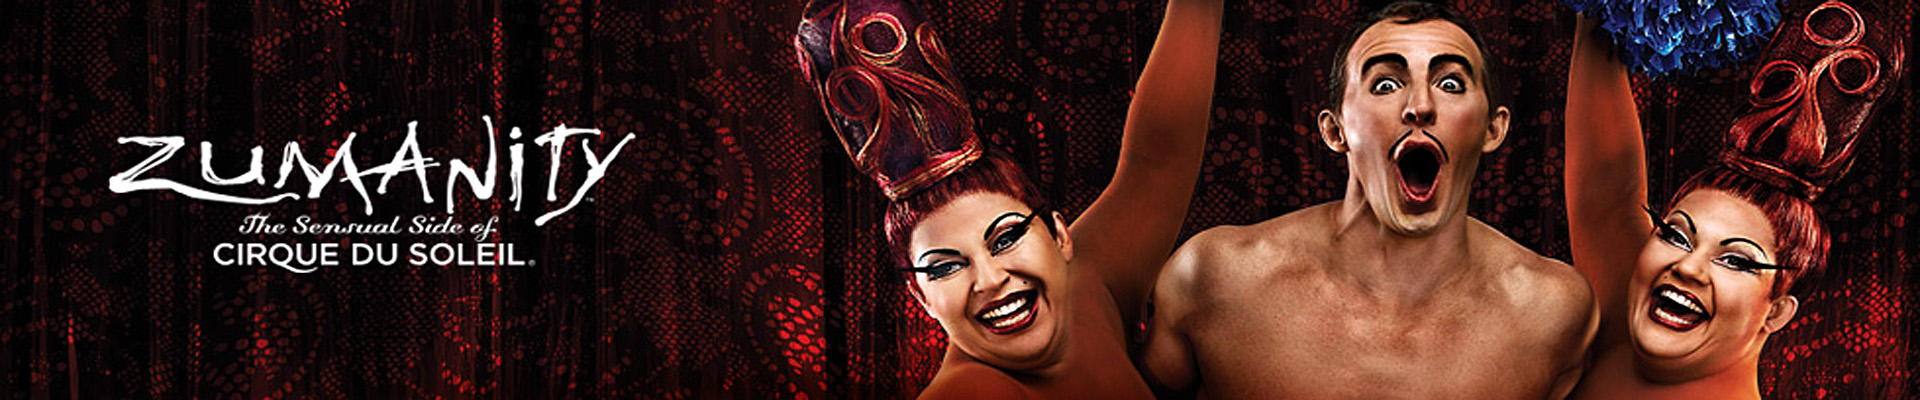 zumanity orgy big black cocks and big tits